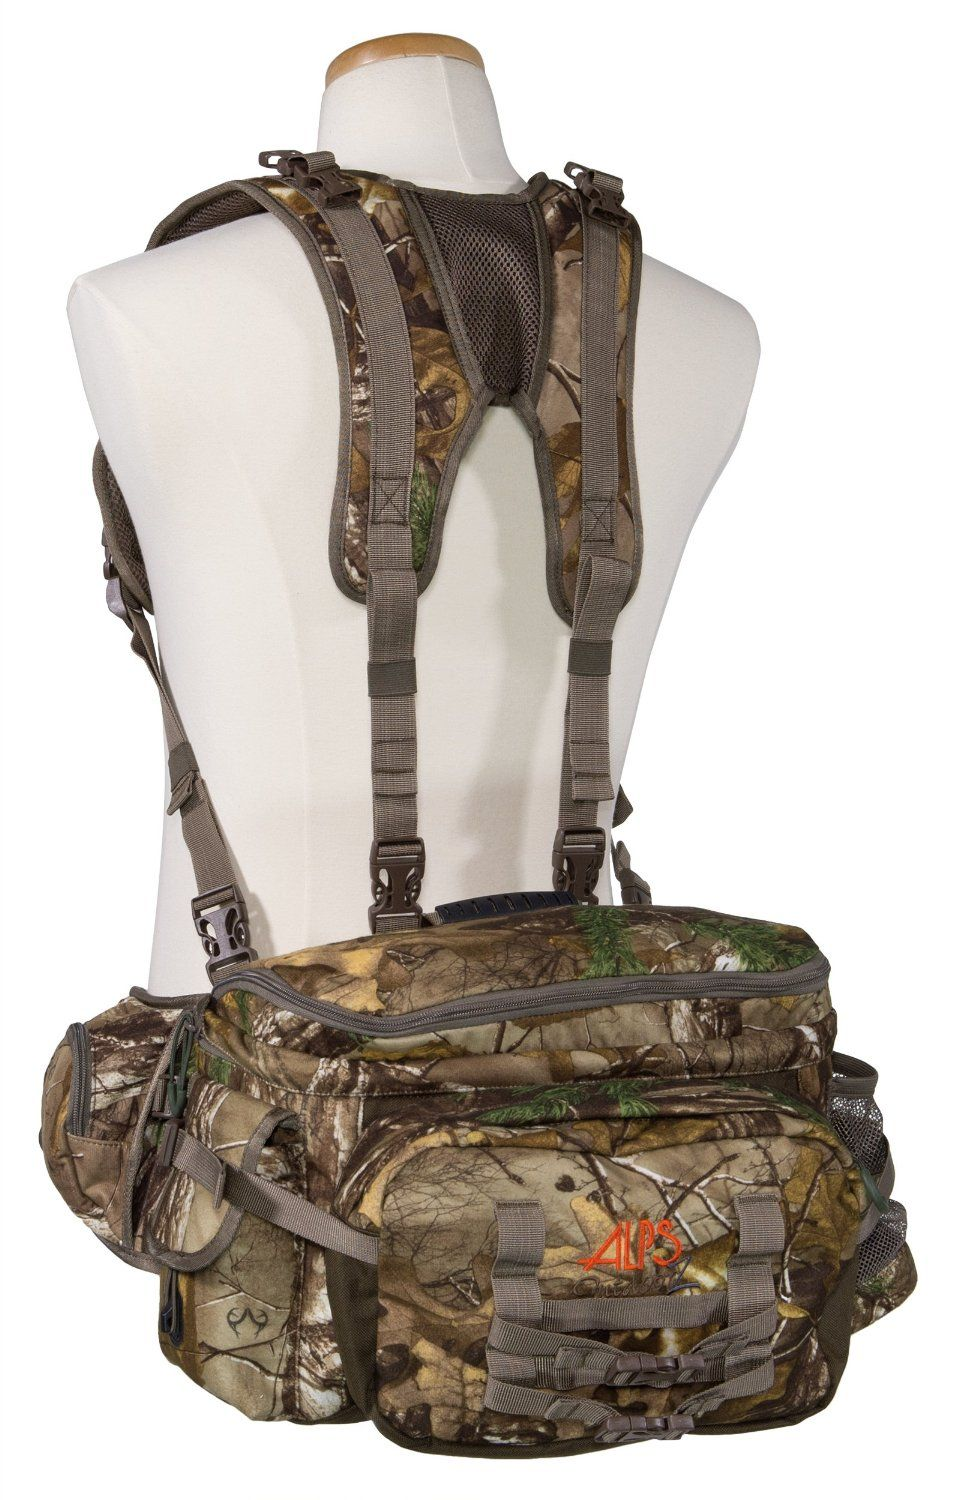 ALPS OutdoorZ Pathfinder Pack Hunting